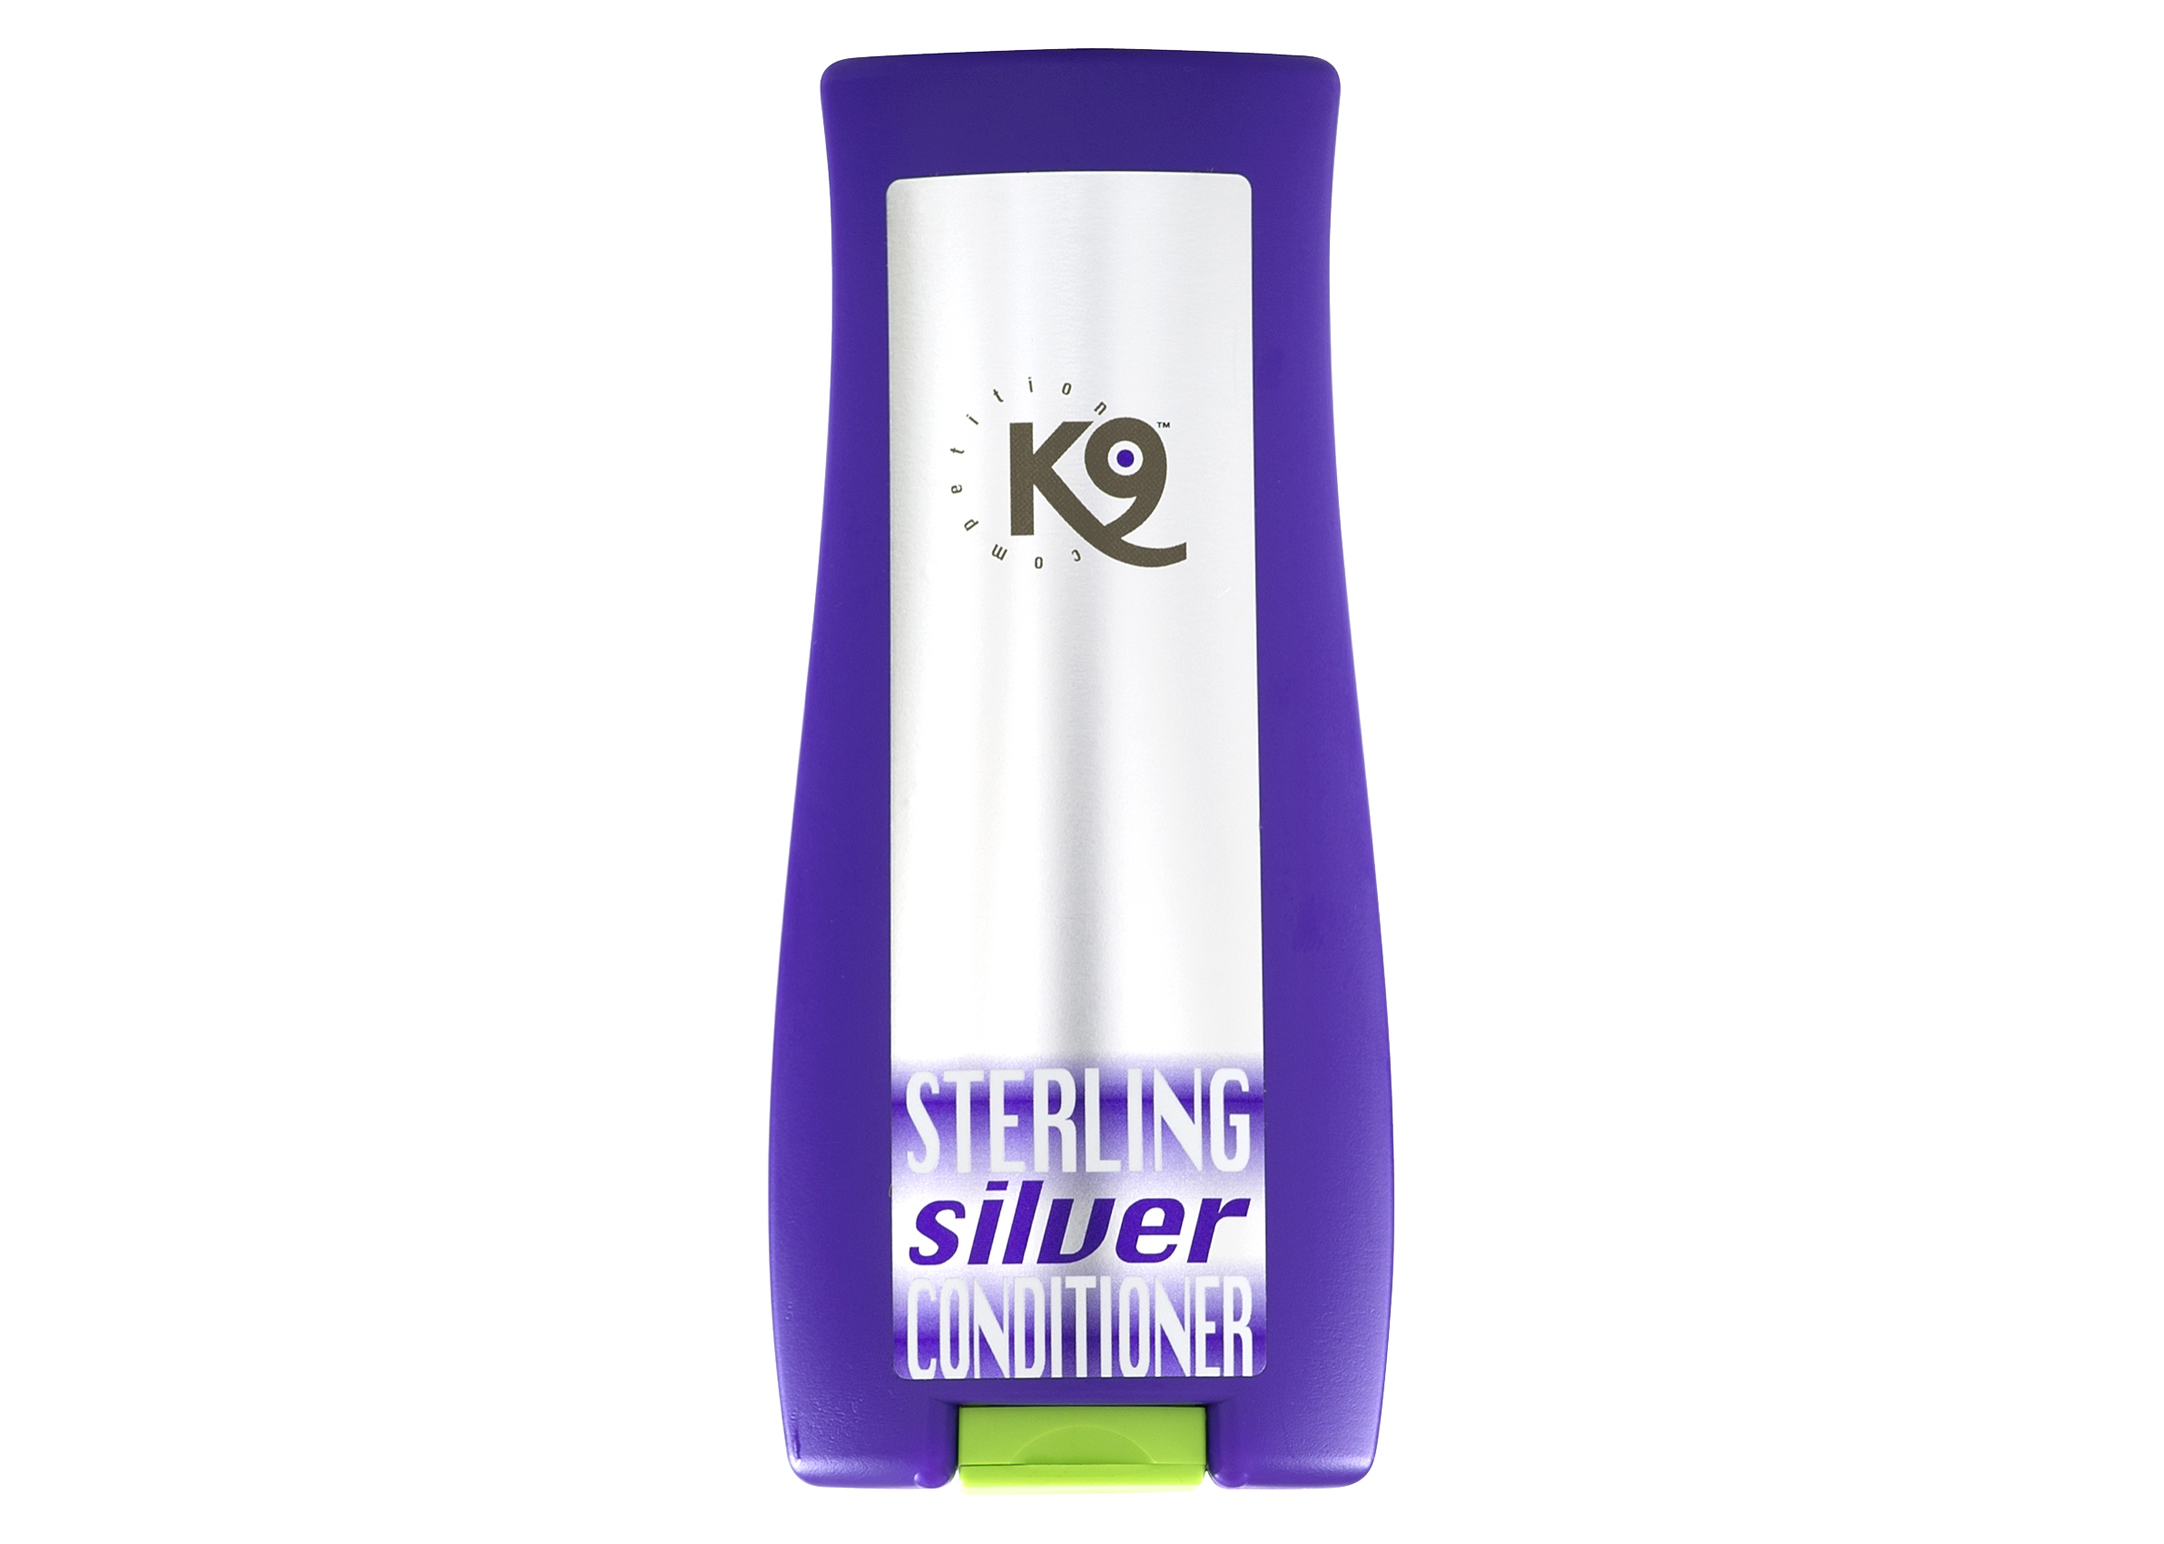 K9 Sterling Silver Conditioner For Dogs and Cats